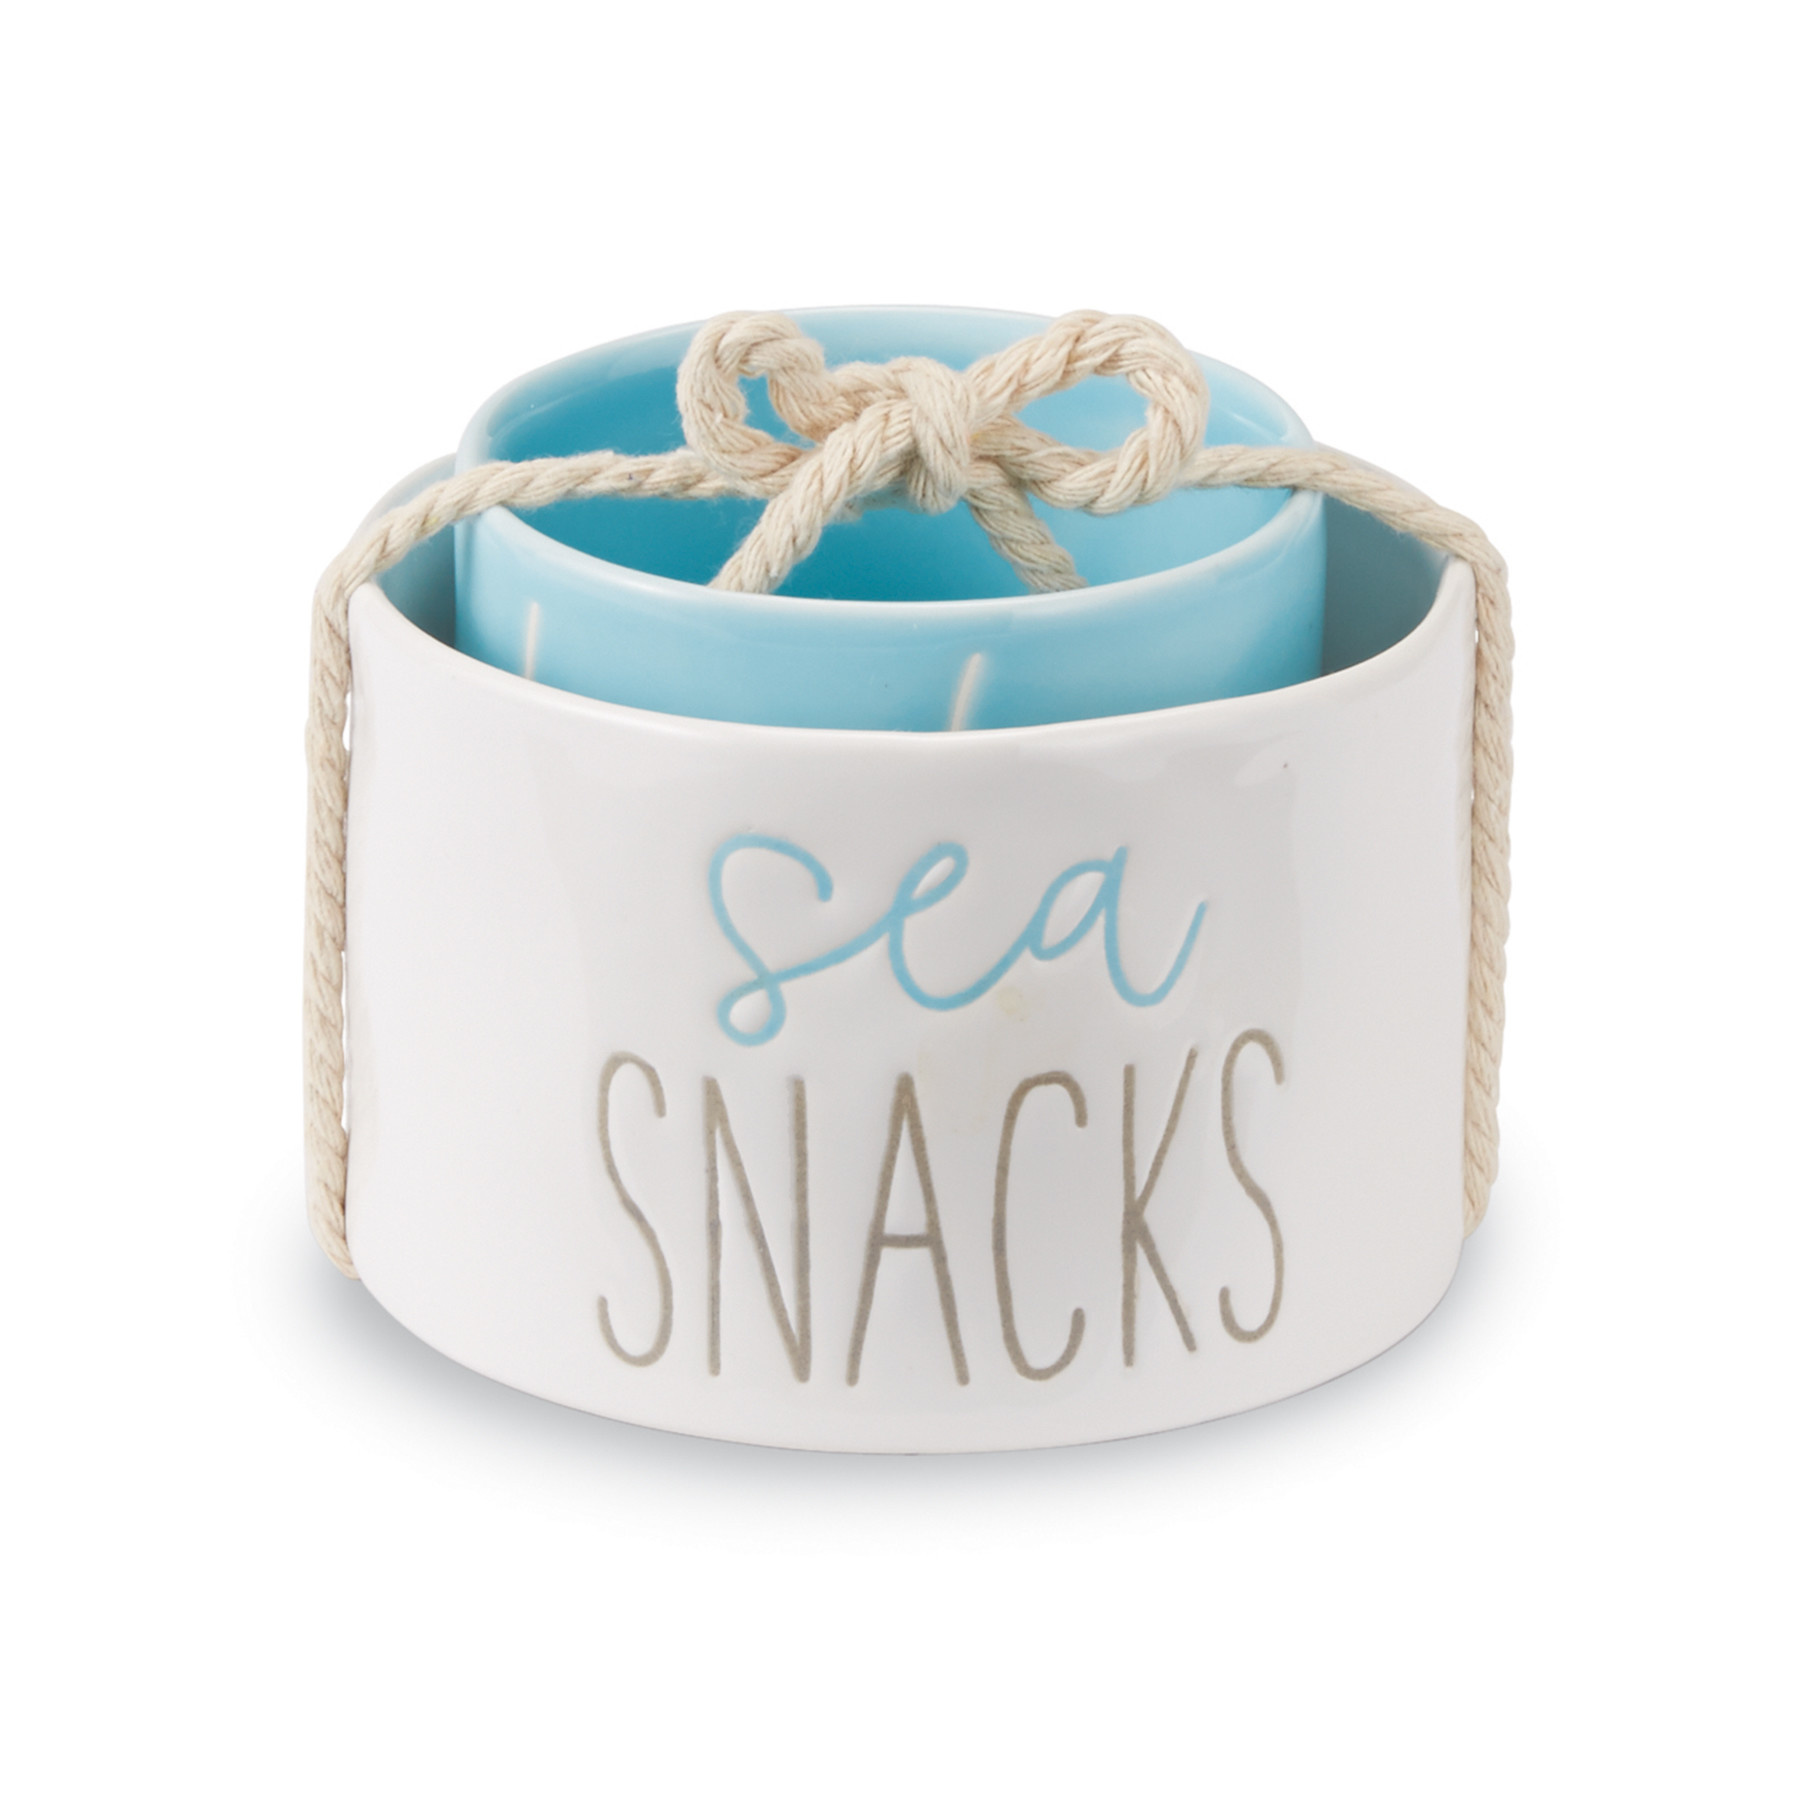 Mudpie BEACH SNACK DIP CUP NESTED SET